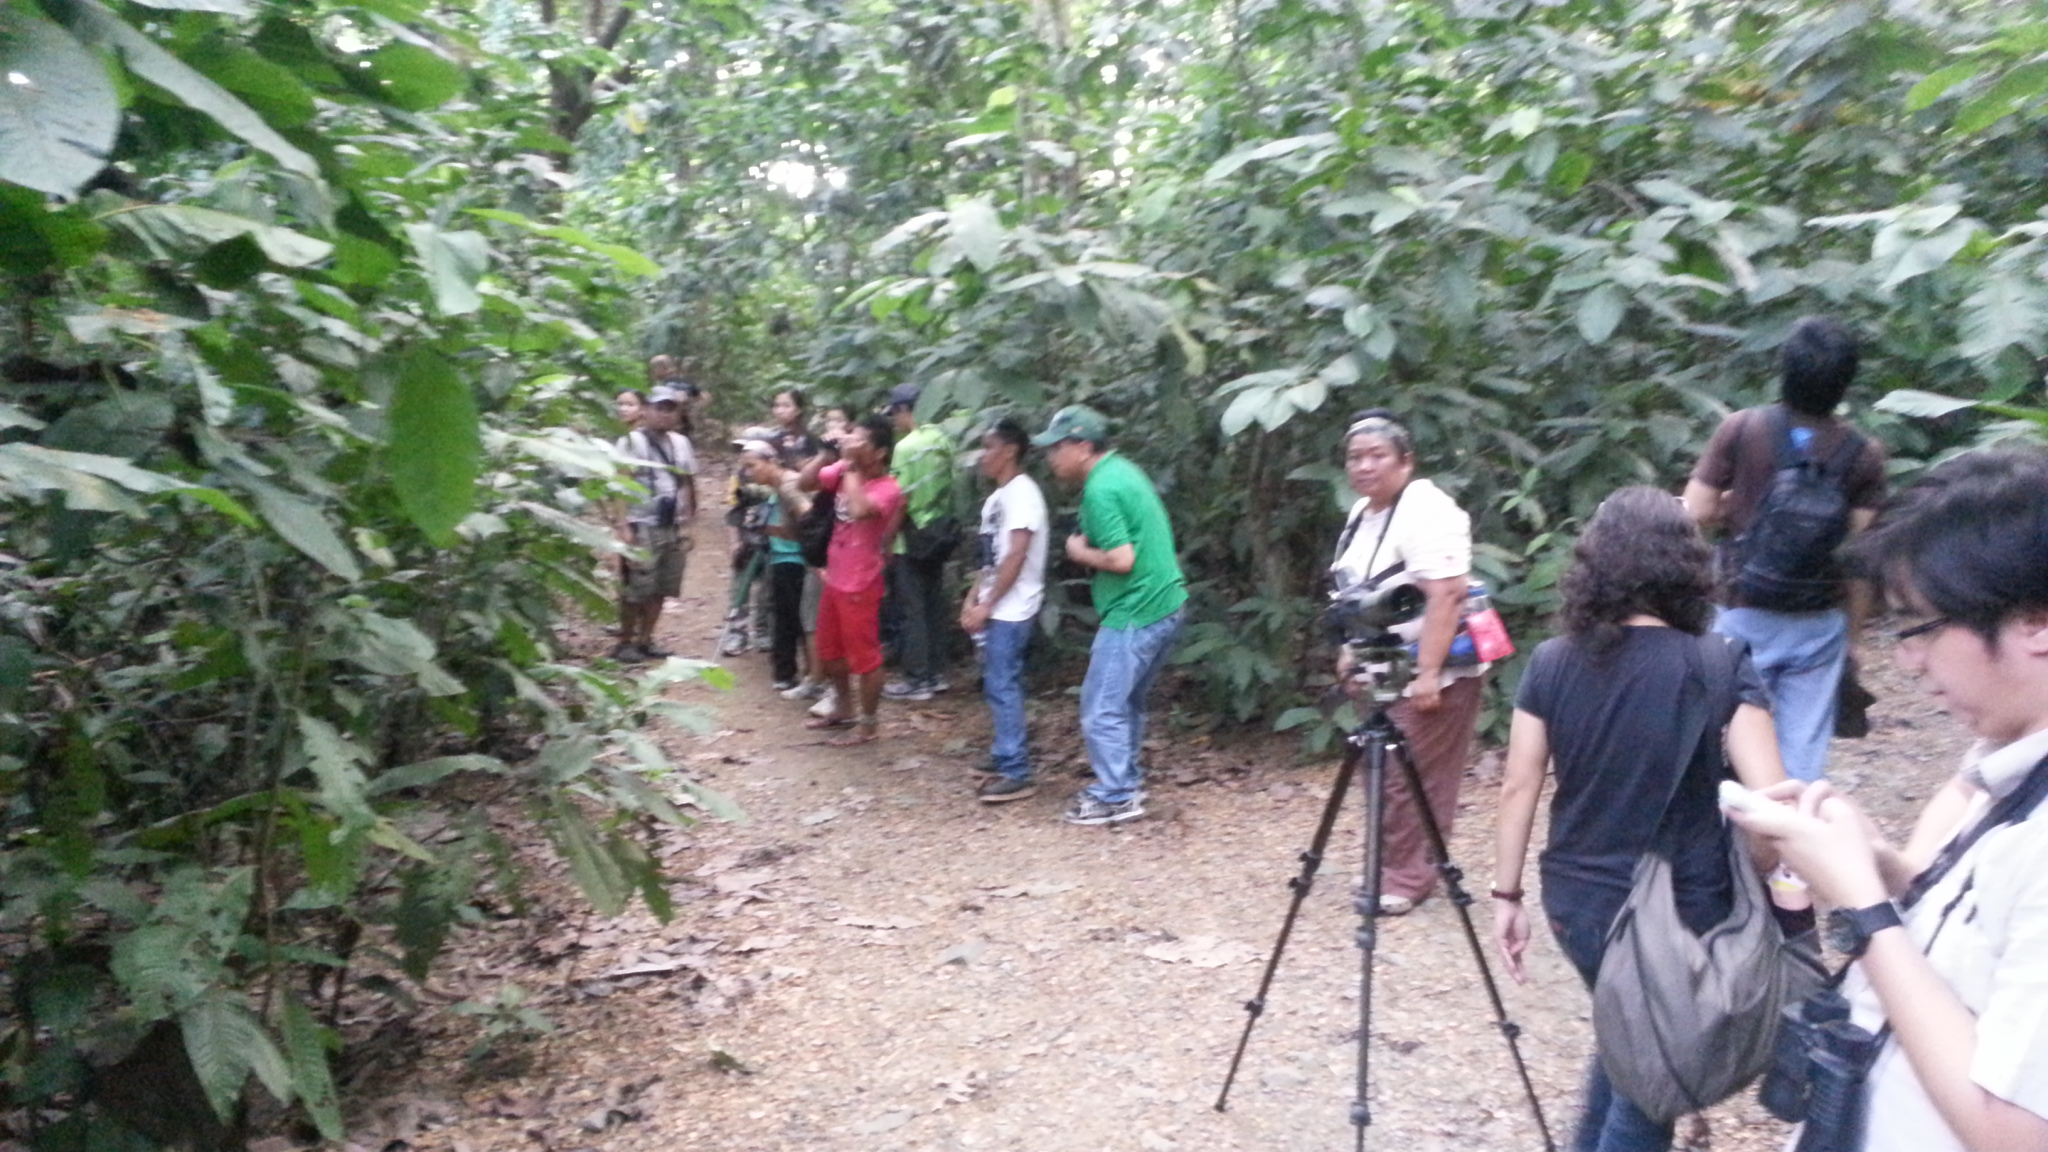 Guides and participants birding in the LMEP mini-forest. Photo by Jun Osano.